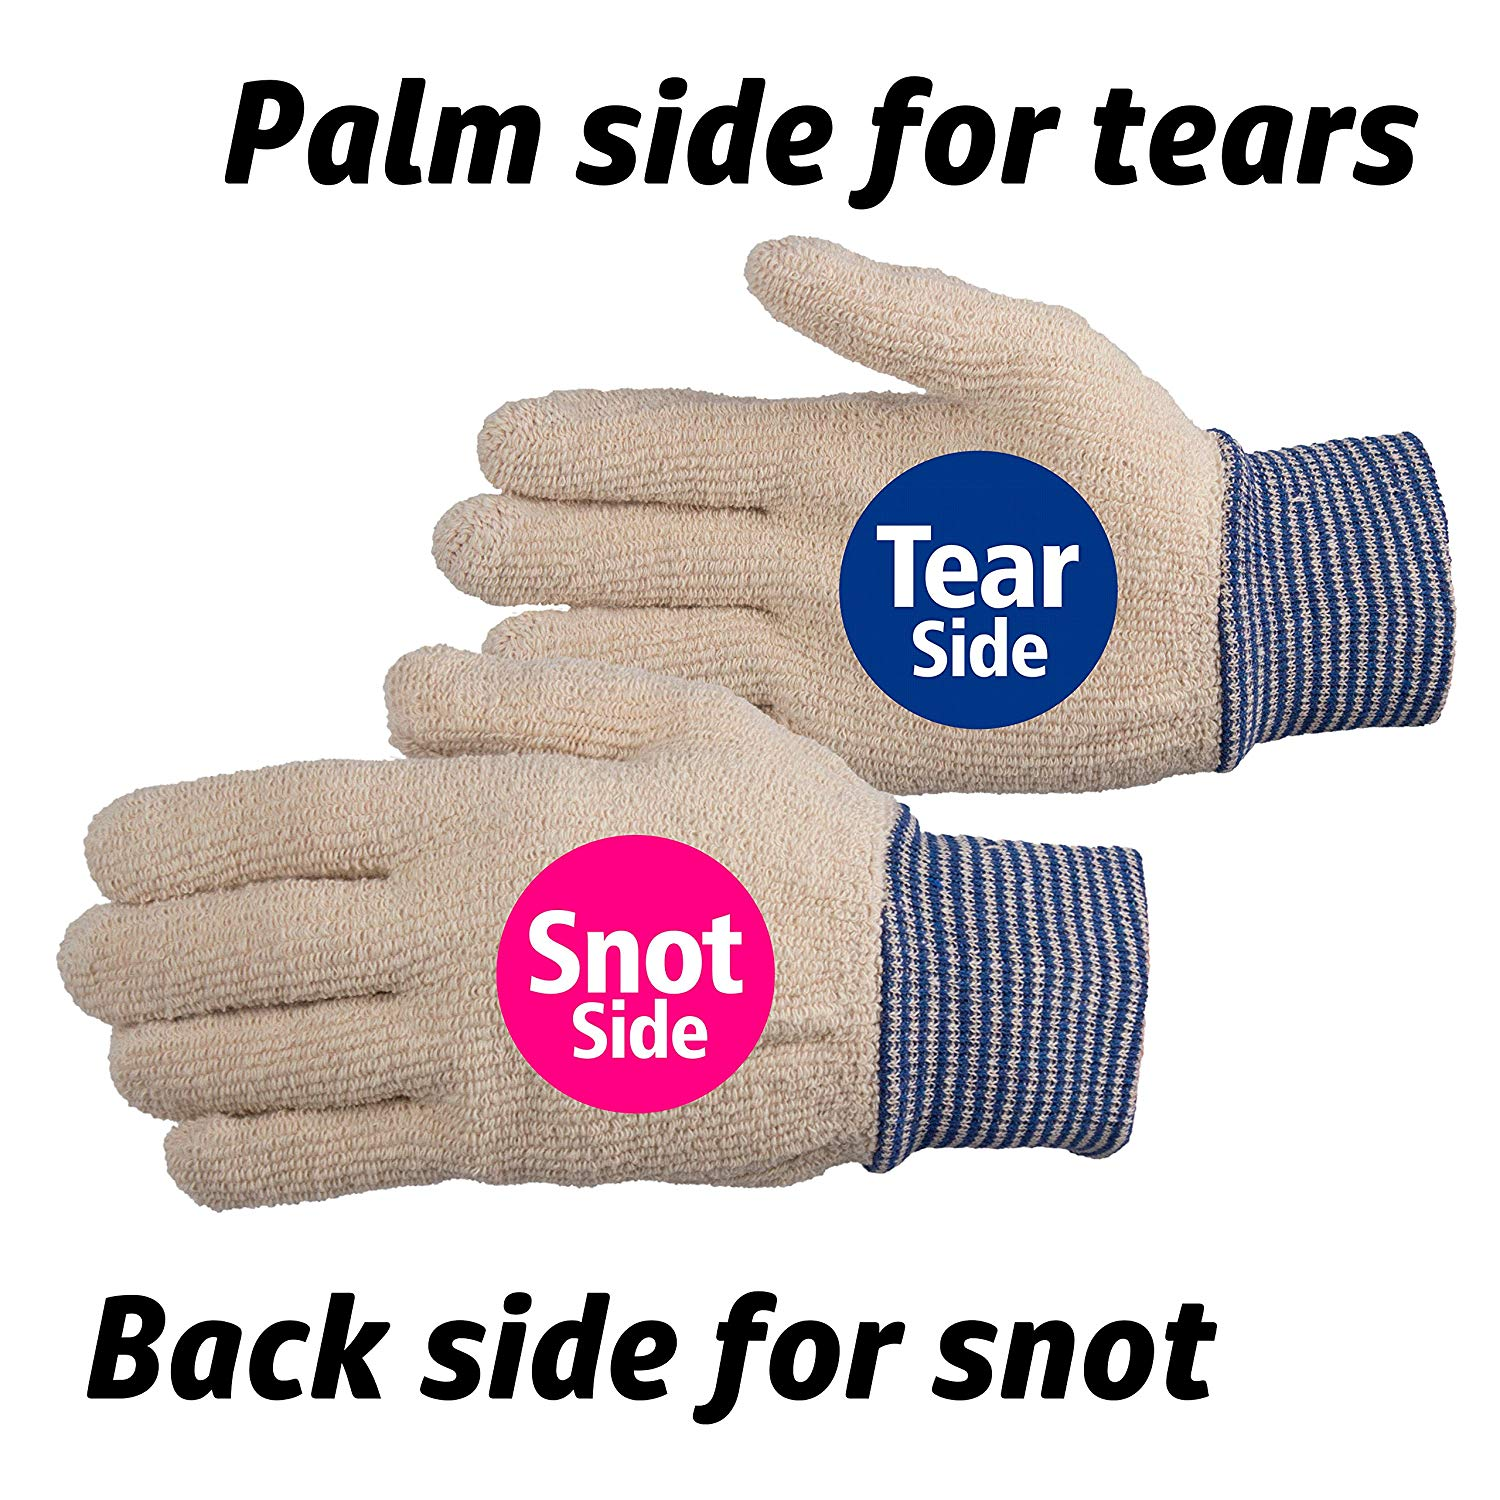 palm side for tears, back side for snot